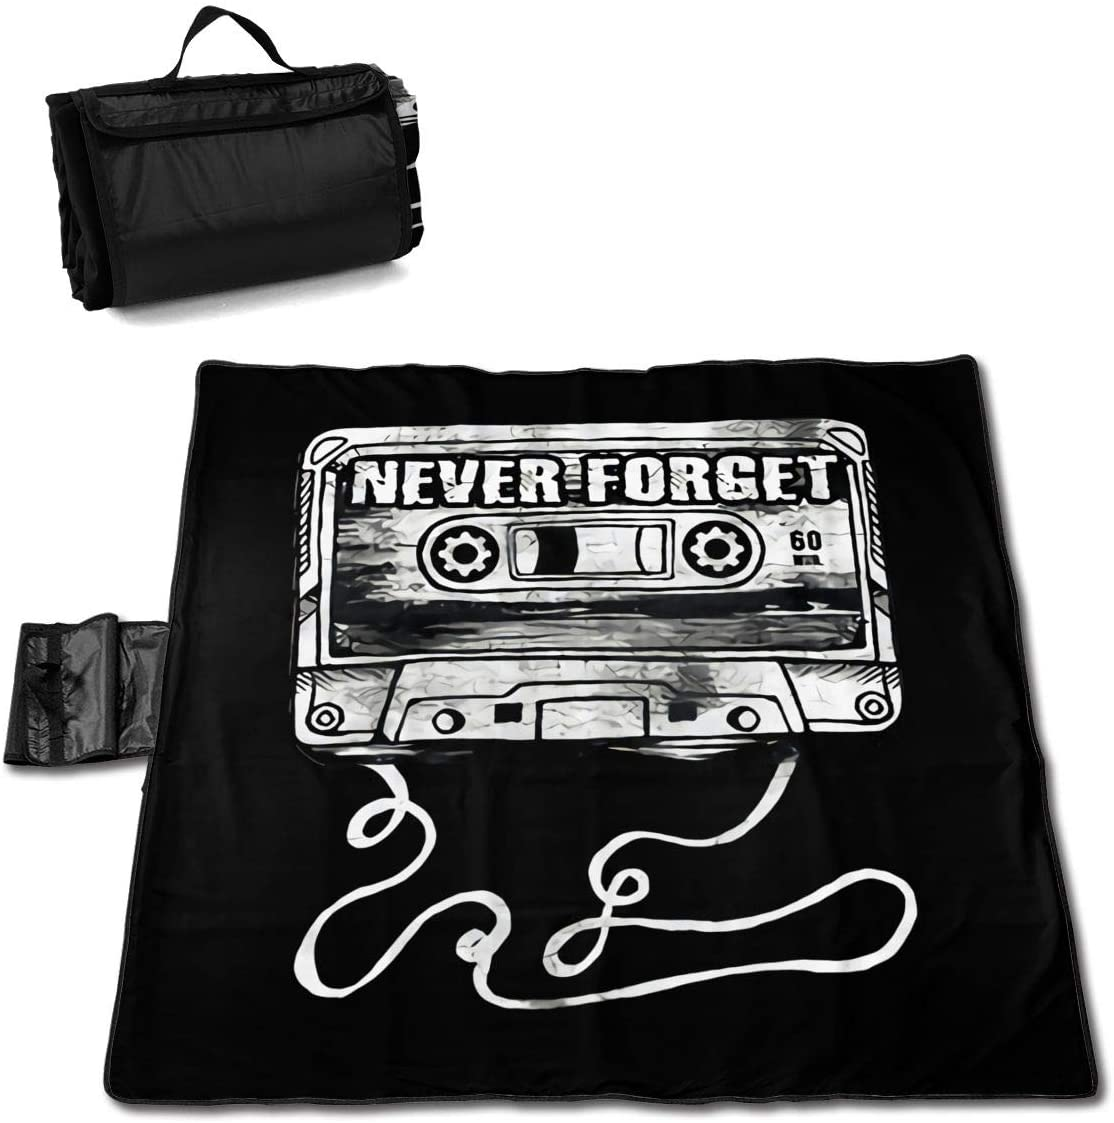 Htu Never Forget Graphic Funny Portable Printed Picnic Blanket Waterproof 59x57(in)